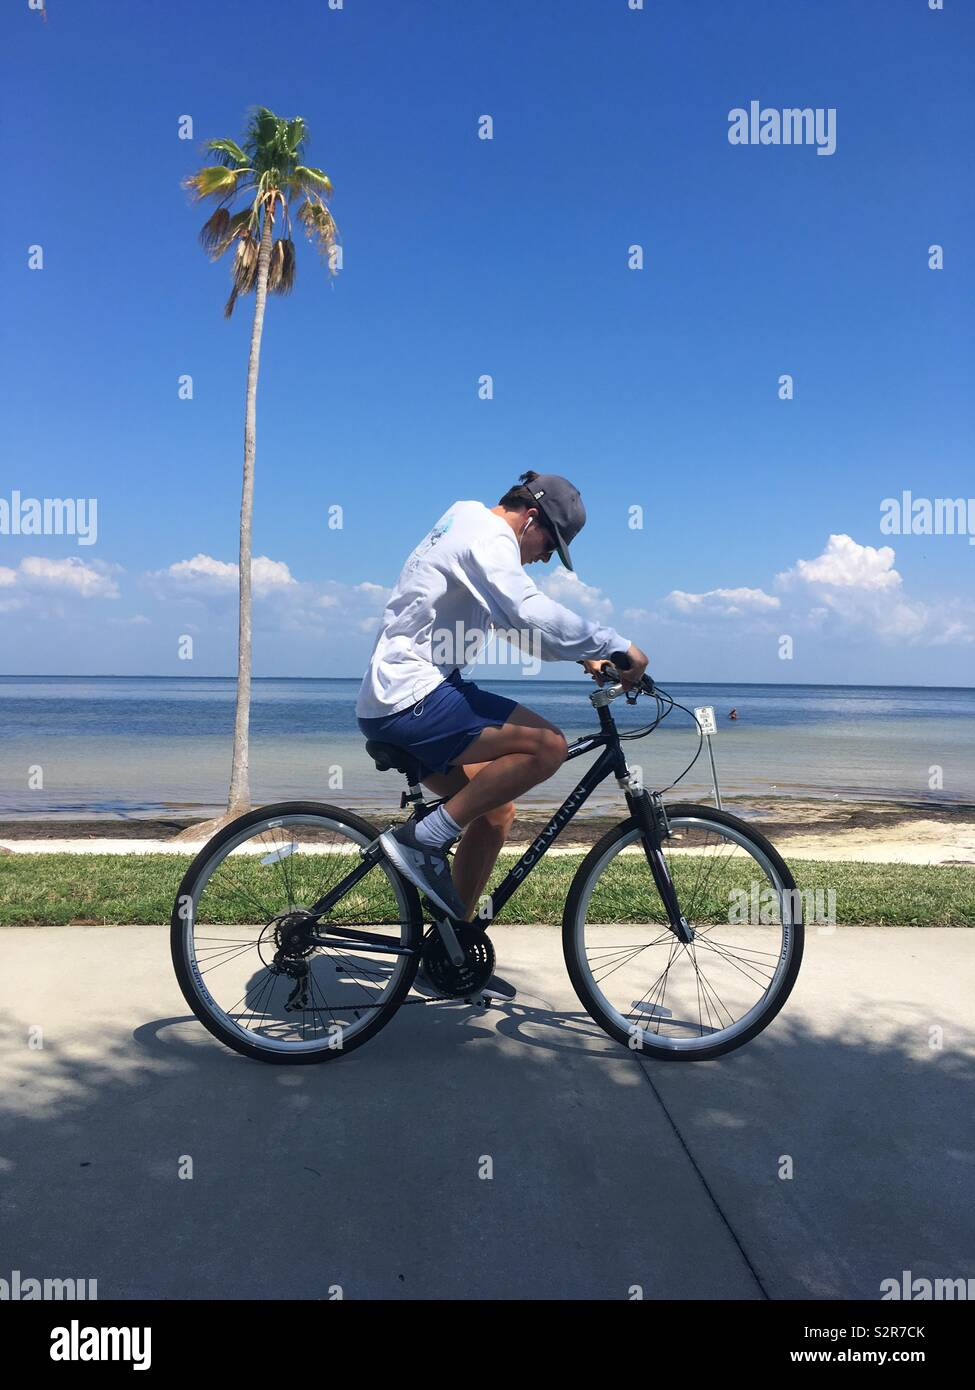 Man with cap on looking at the ground, cycling past a palm tree - Stock Image